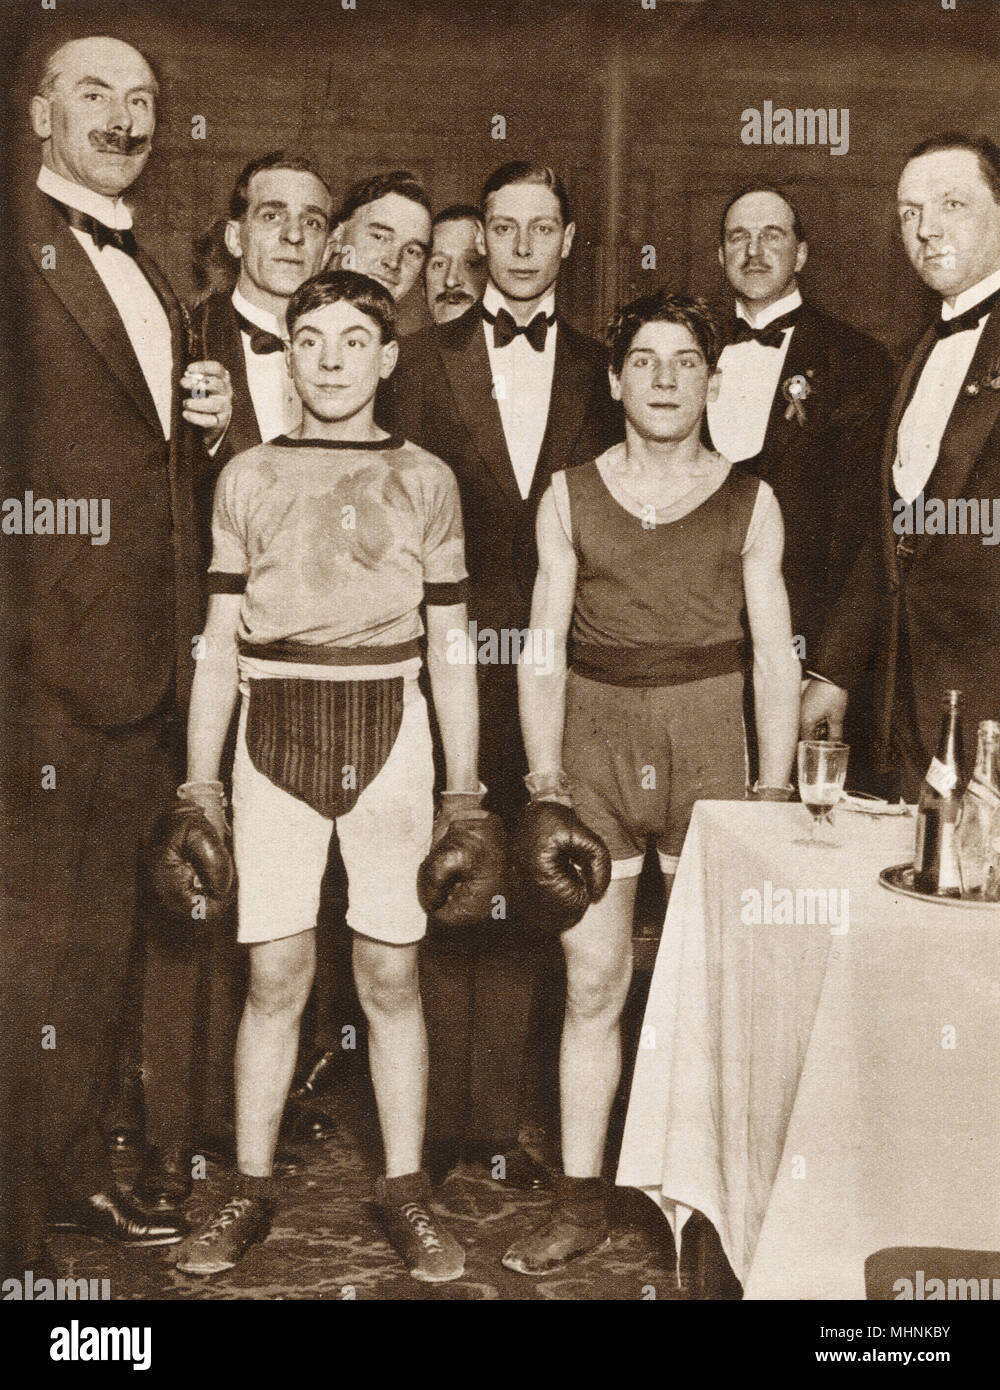 Albert, Duke of York (1895-1952) (later King George VI), pictured with two contestants in the Stable Lads Boxing Tournament, which took place at the National Sporting Club in aid of St. Dunstan's (Charity set up to aid blind and visually-impaired veterans). All the leading racing stables were represented.     Date: 1923 Stock Photo